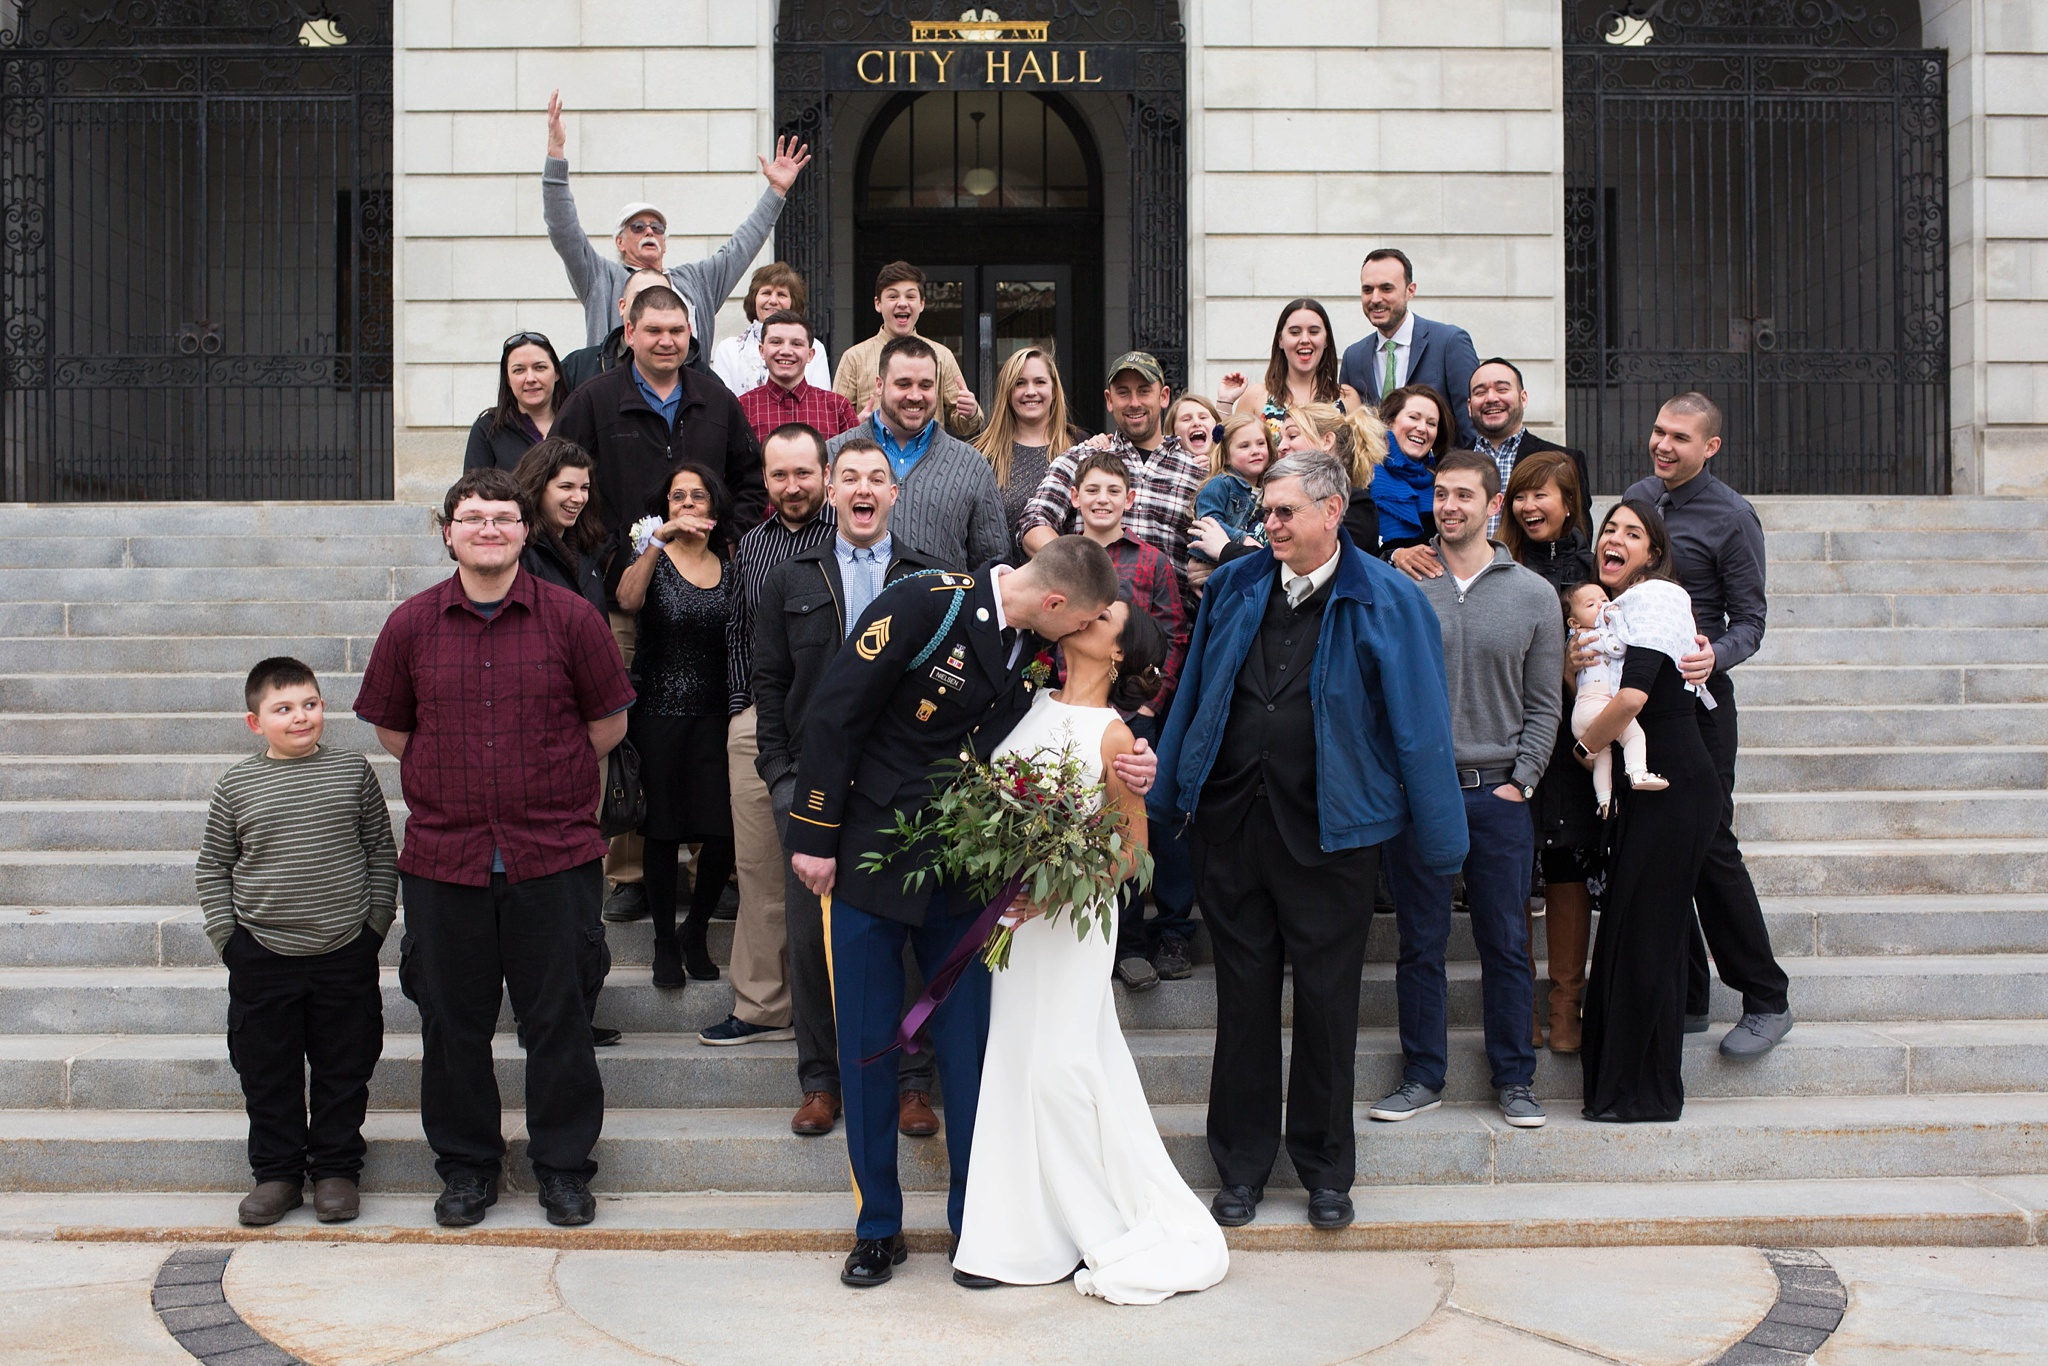 city hall group wedding photo